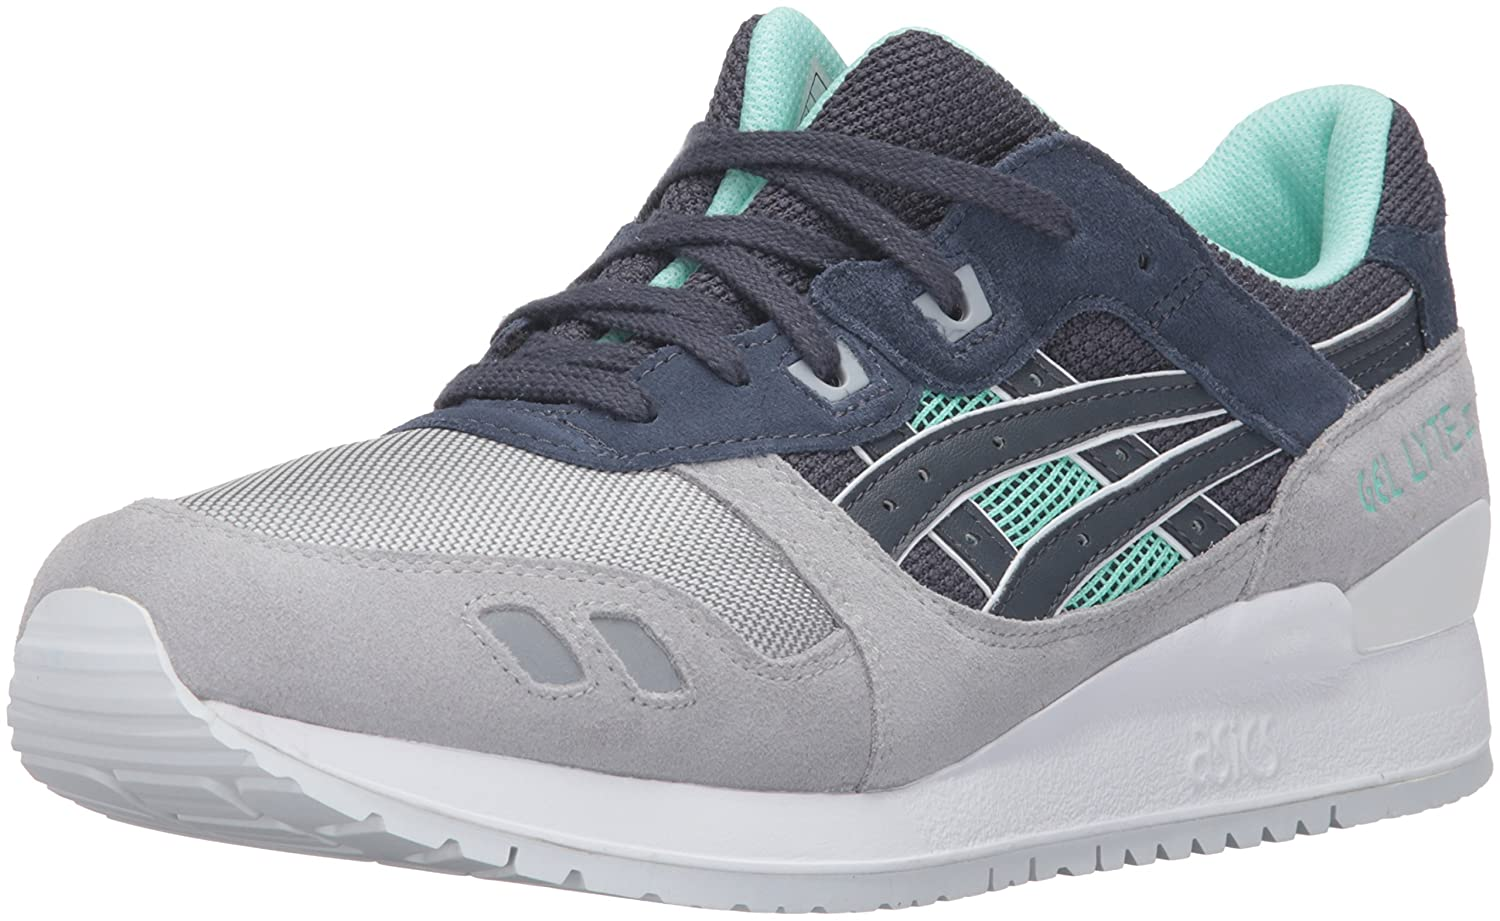 ASICS Men's Gel-Lyte III Fashion Sneaker B019PXSE2S 6 D(M) US|India Ink/India Ink